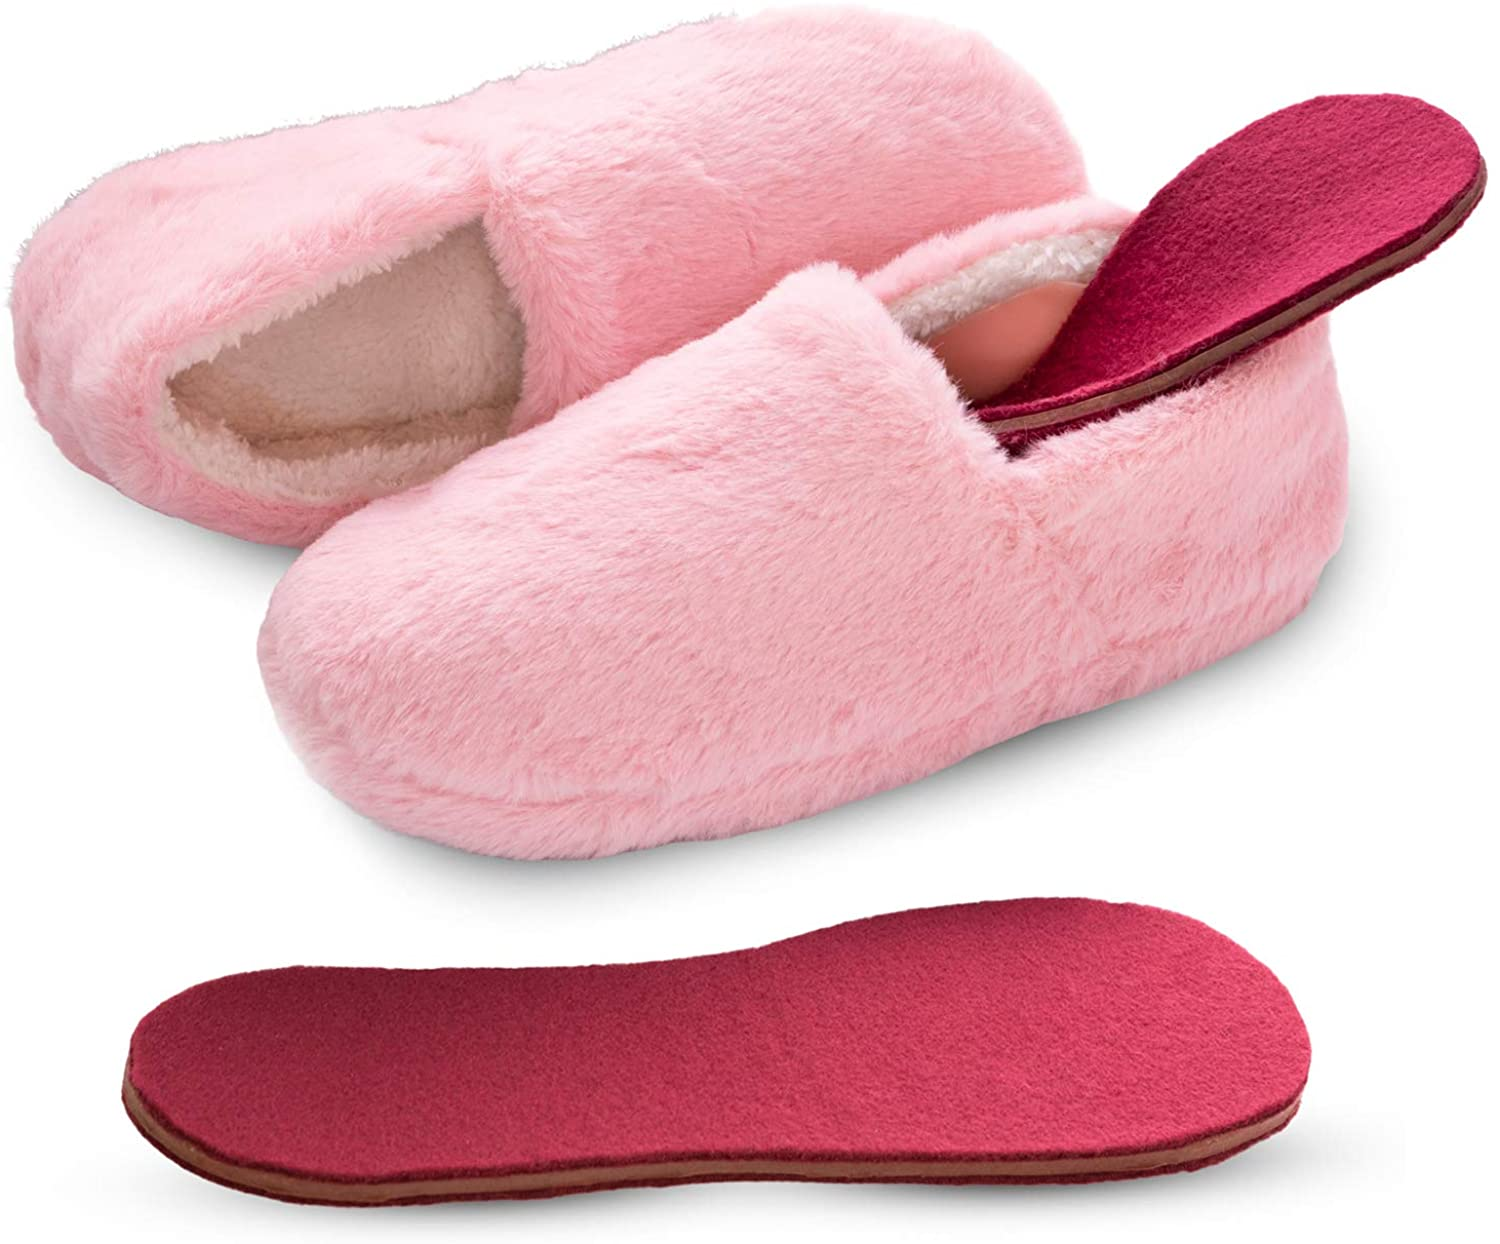 mothers-day-gifts-from-son-slippers